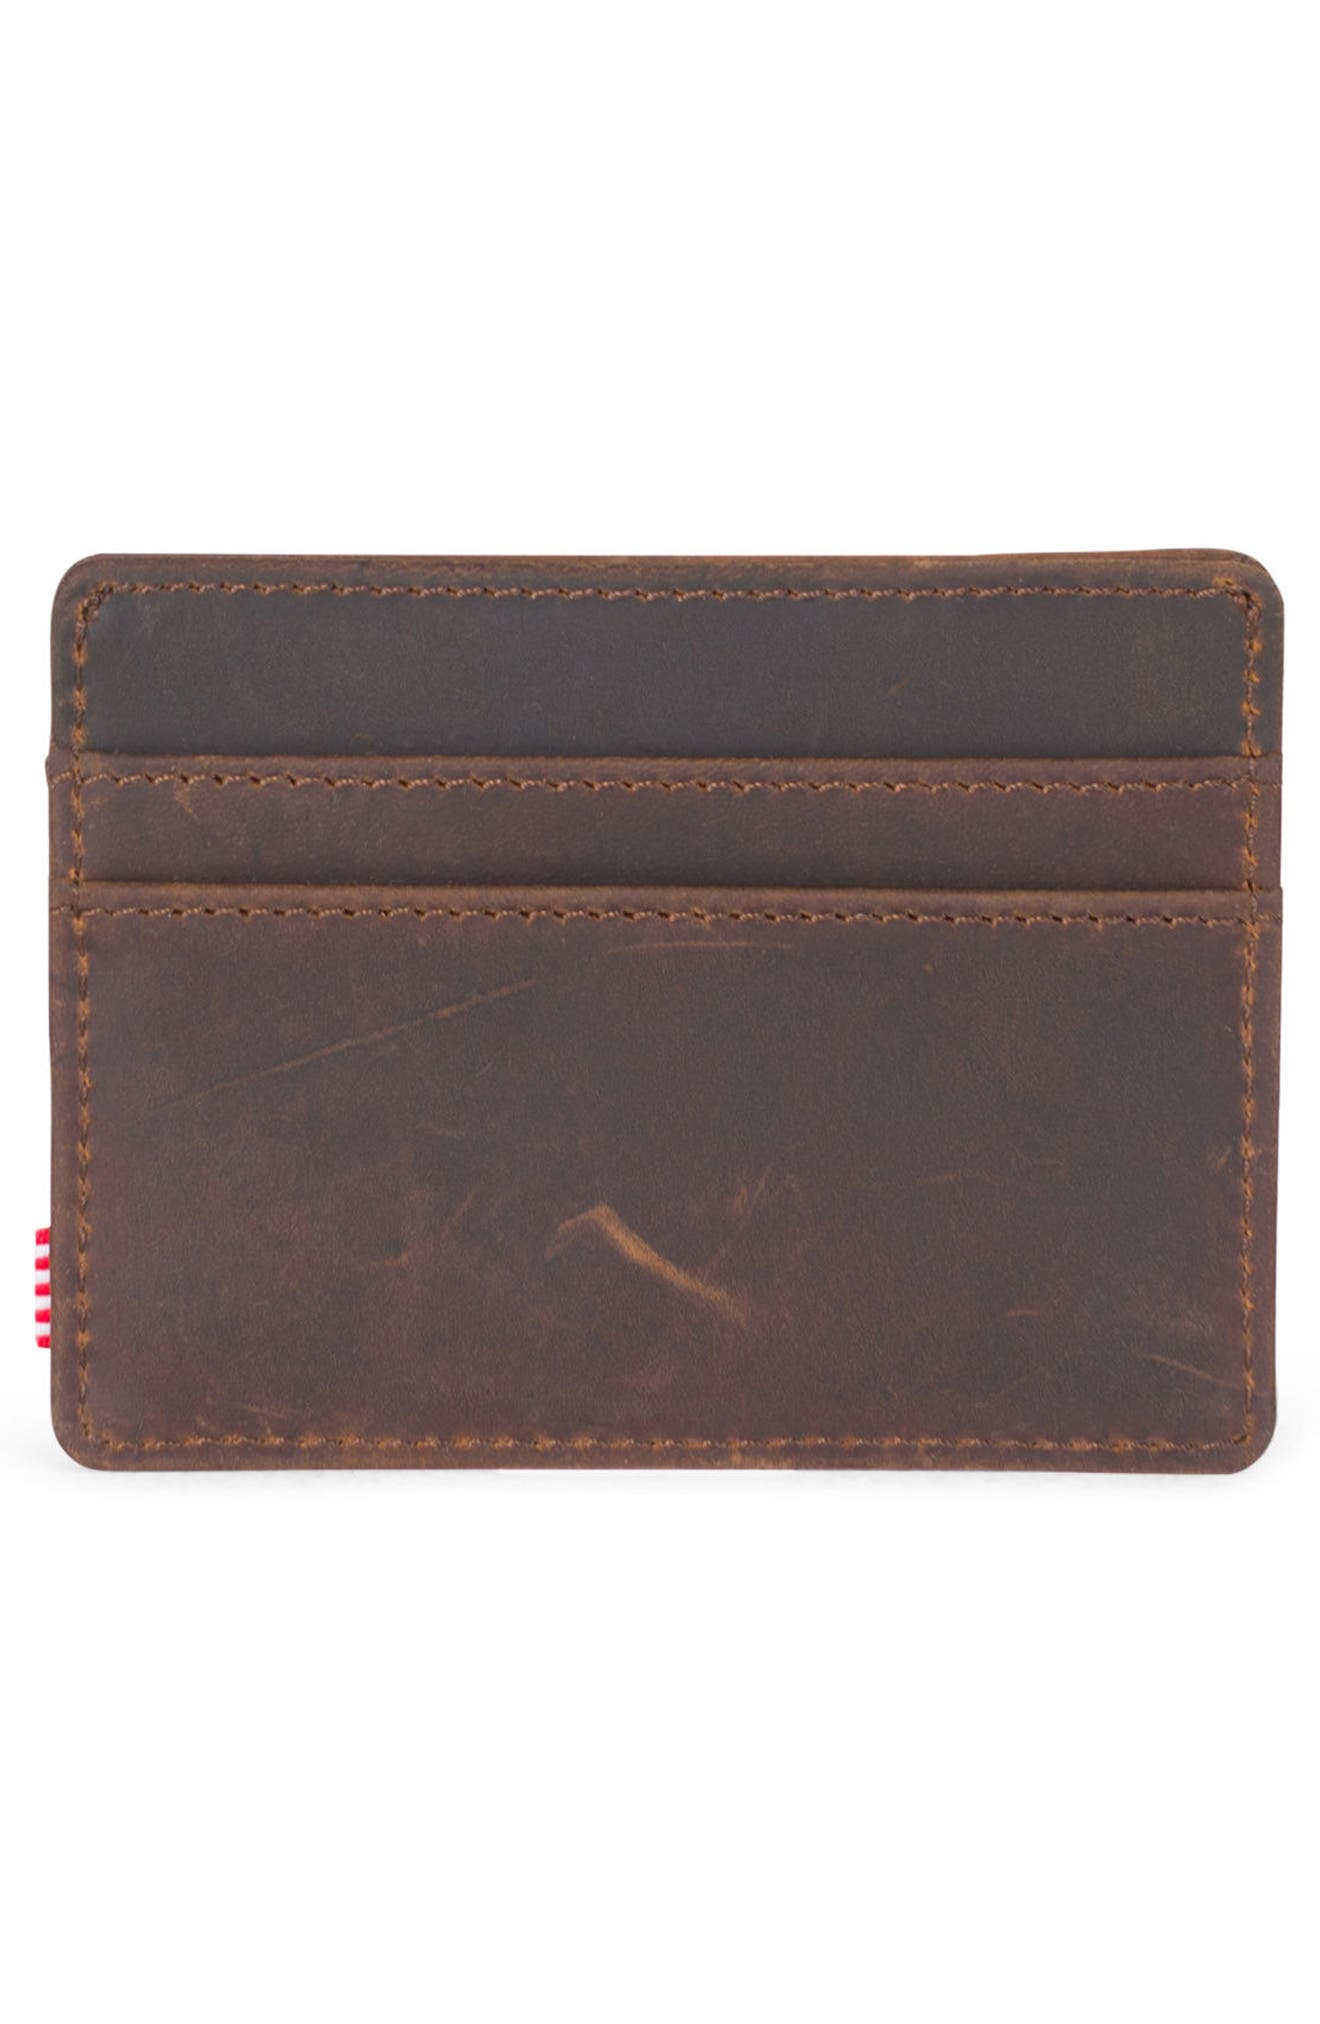 Charlie Leather Card Case,                             Alternate thumbnail 11, color,